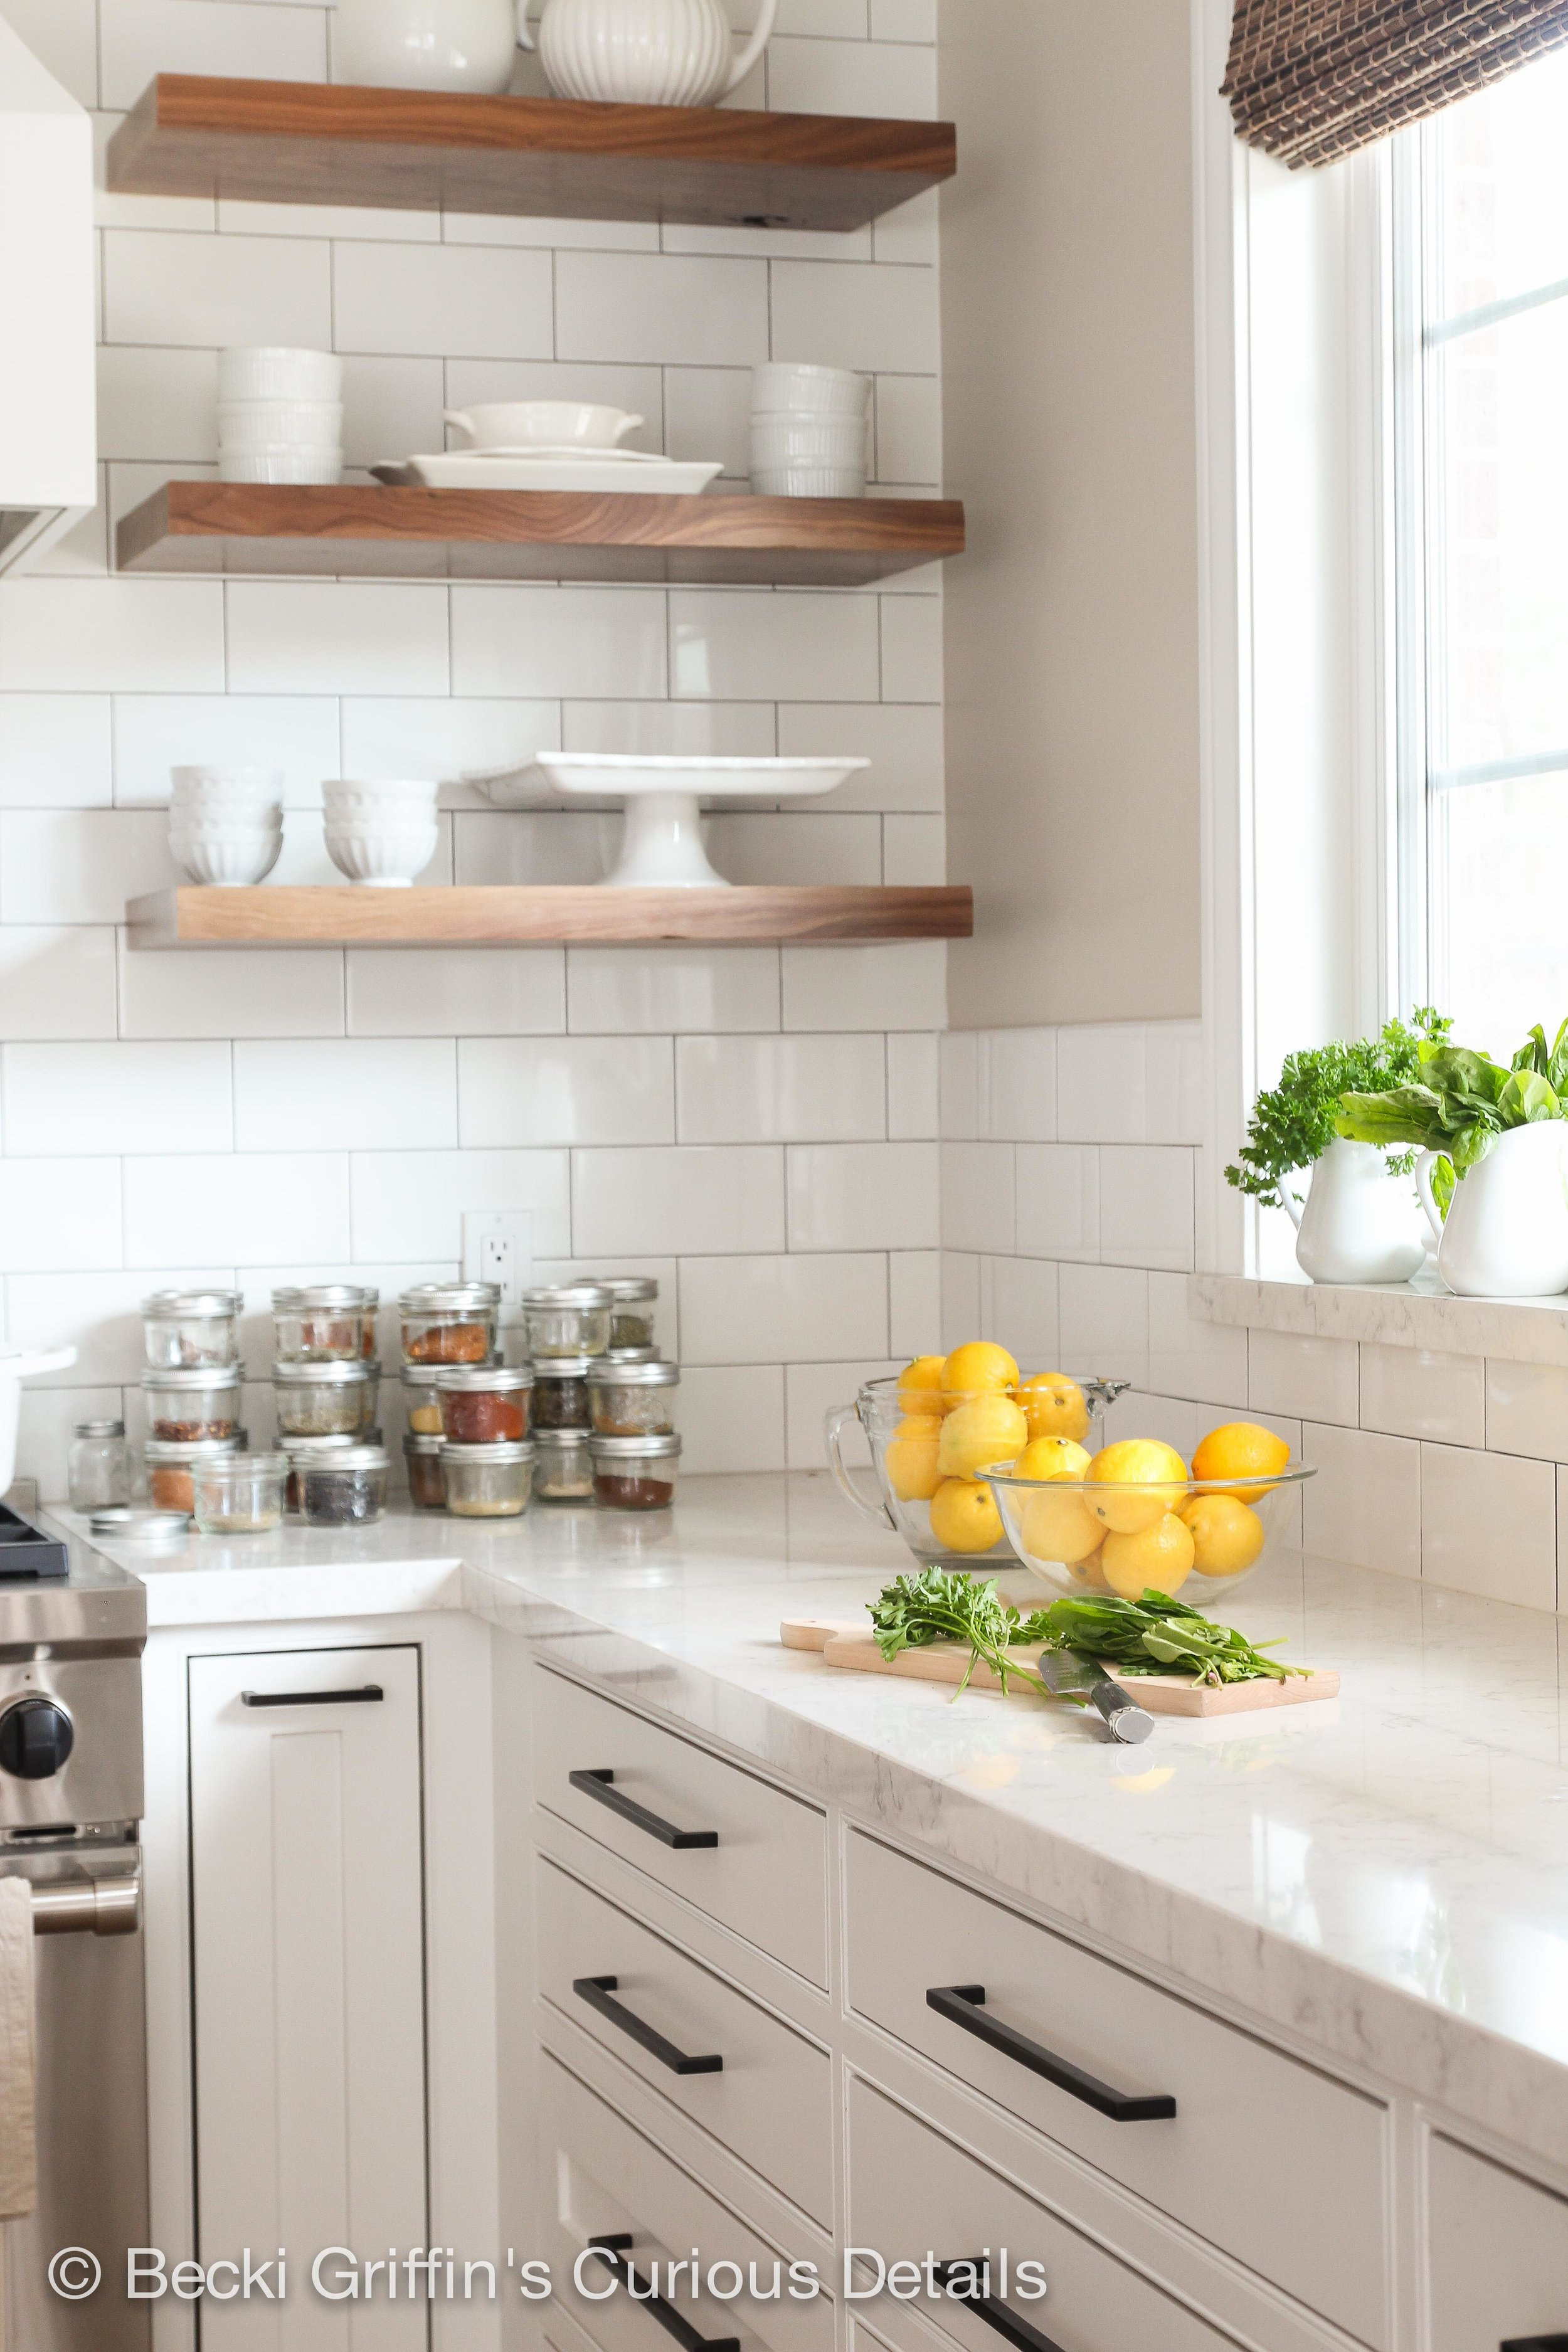 The new quartz countertops are beautiful and extremely durable. A great choice for a big family kitchen.